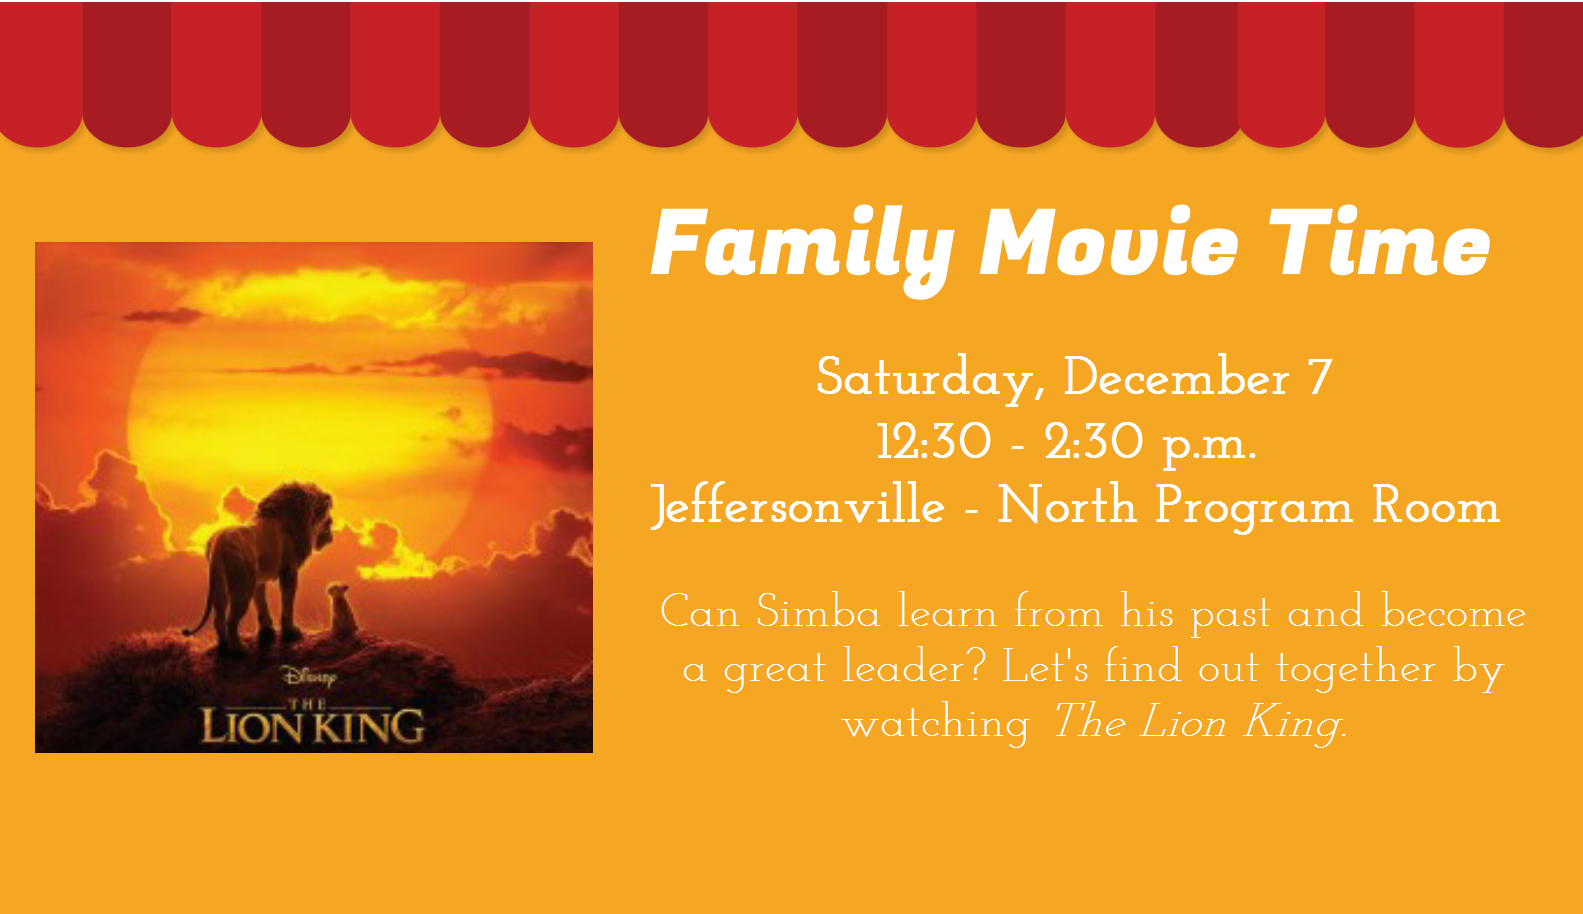 Family Movie Time - The Lion King (2019)